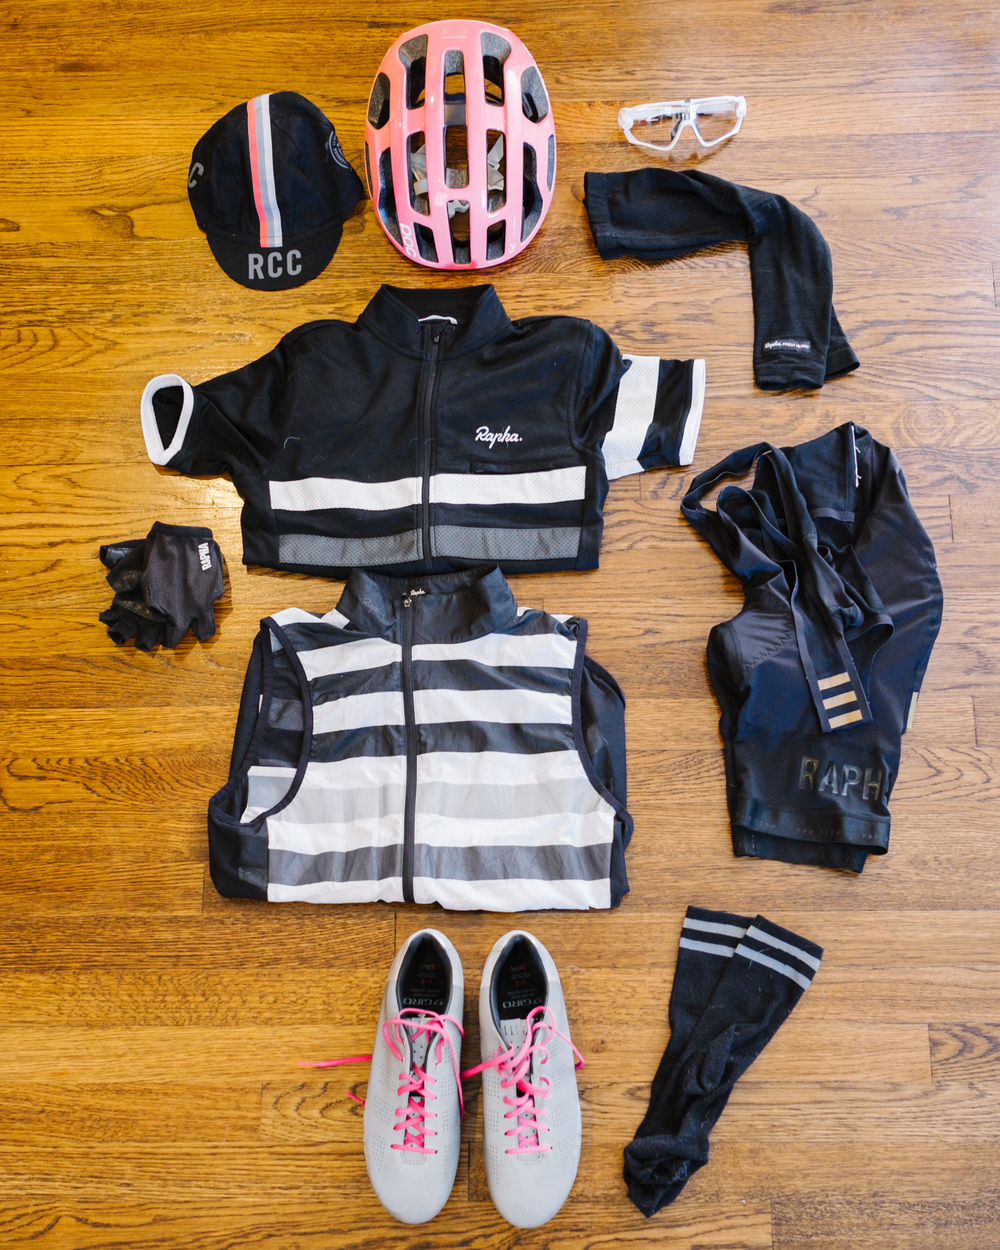 On the bike: apparel